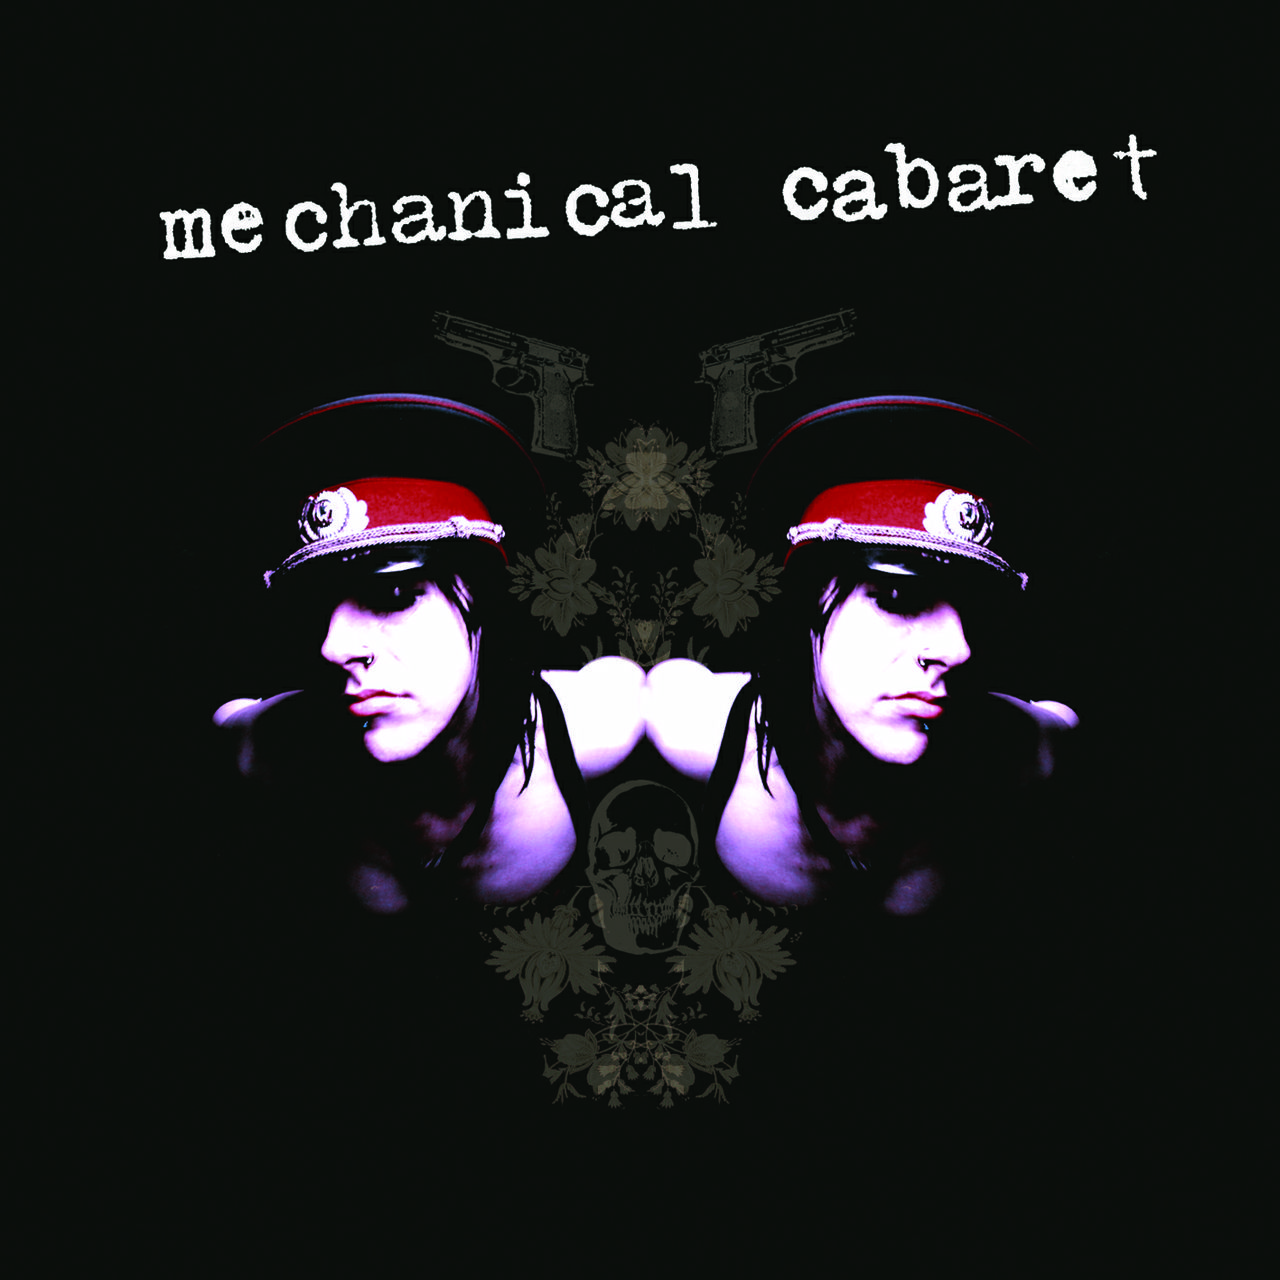 Mechanical Cabaret - Product For Your Insecurity - Album - 11 tracks